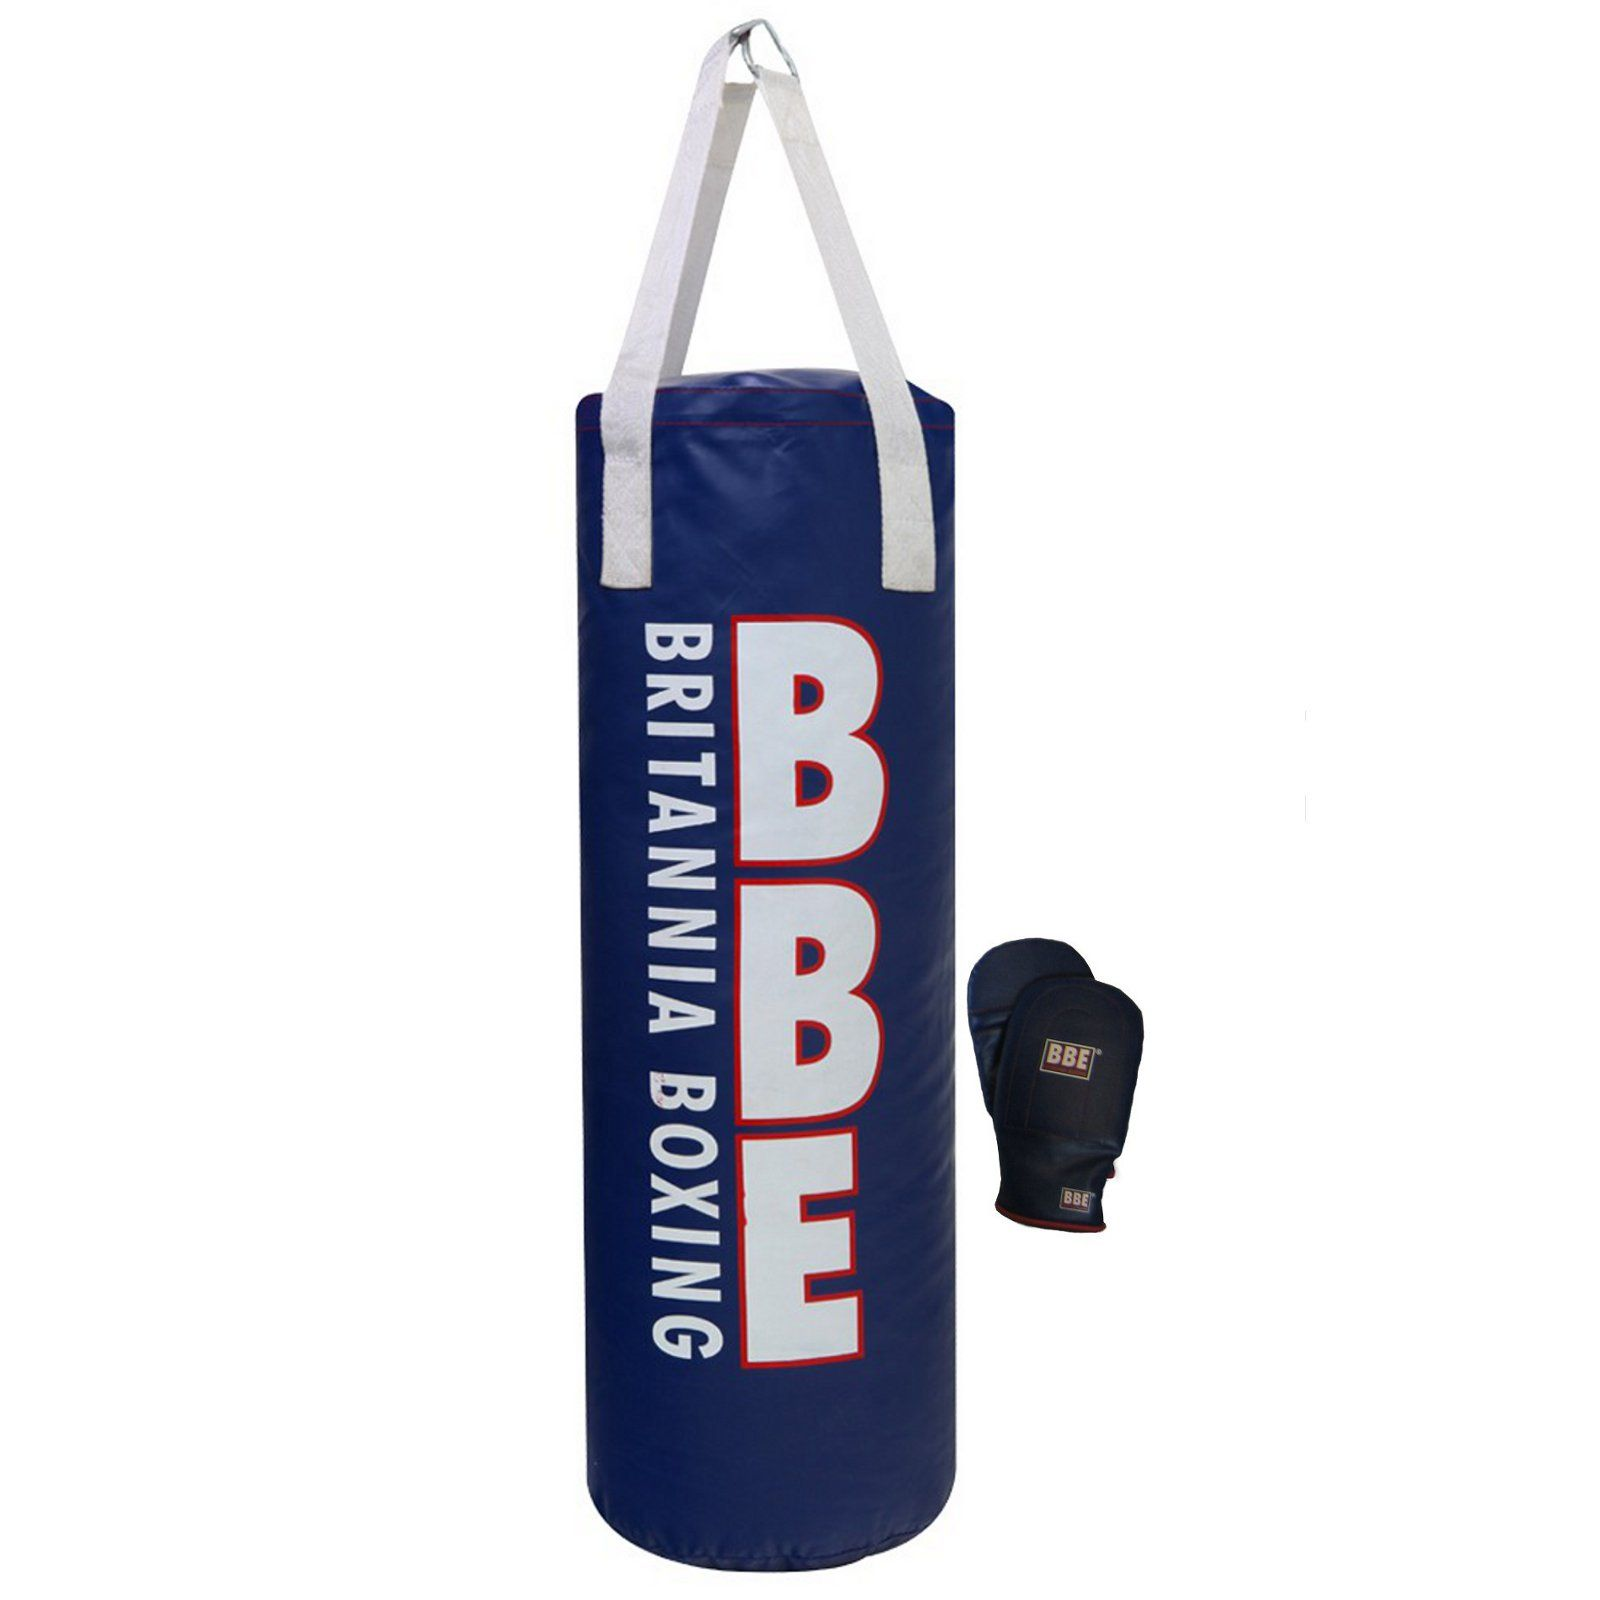 Bbe 3ft Punch Bag With Mitts Sweatband Com